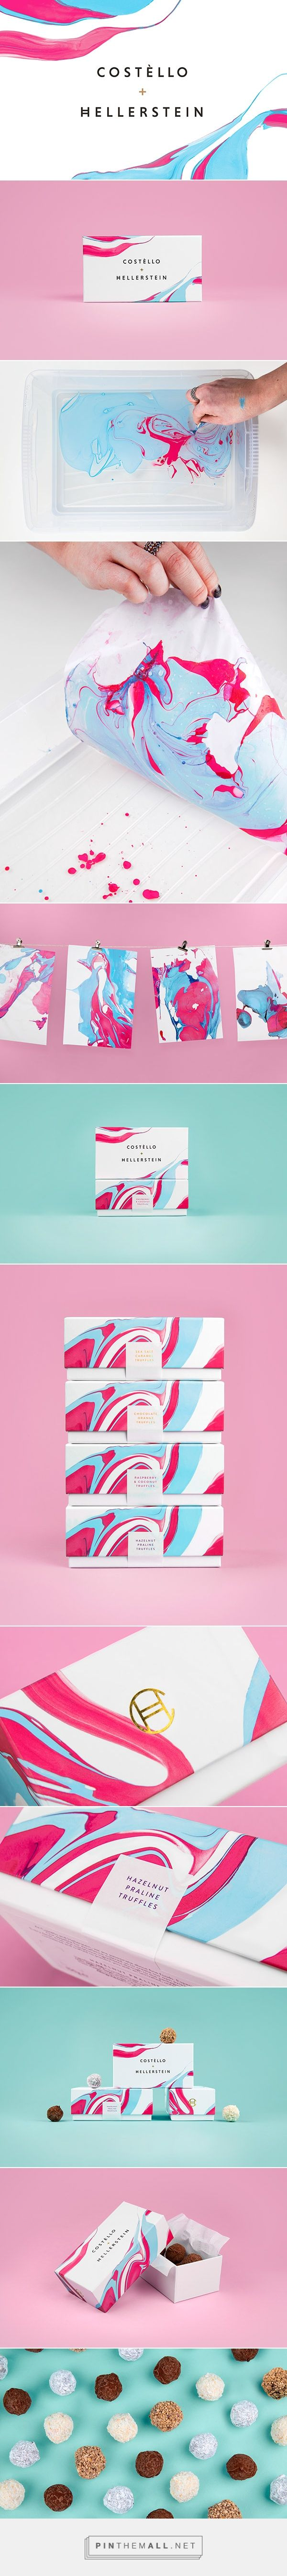 Costello & Hellerstein packaging designed by Robot Food #creative #packaging #design